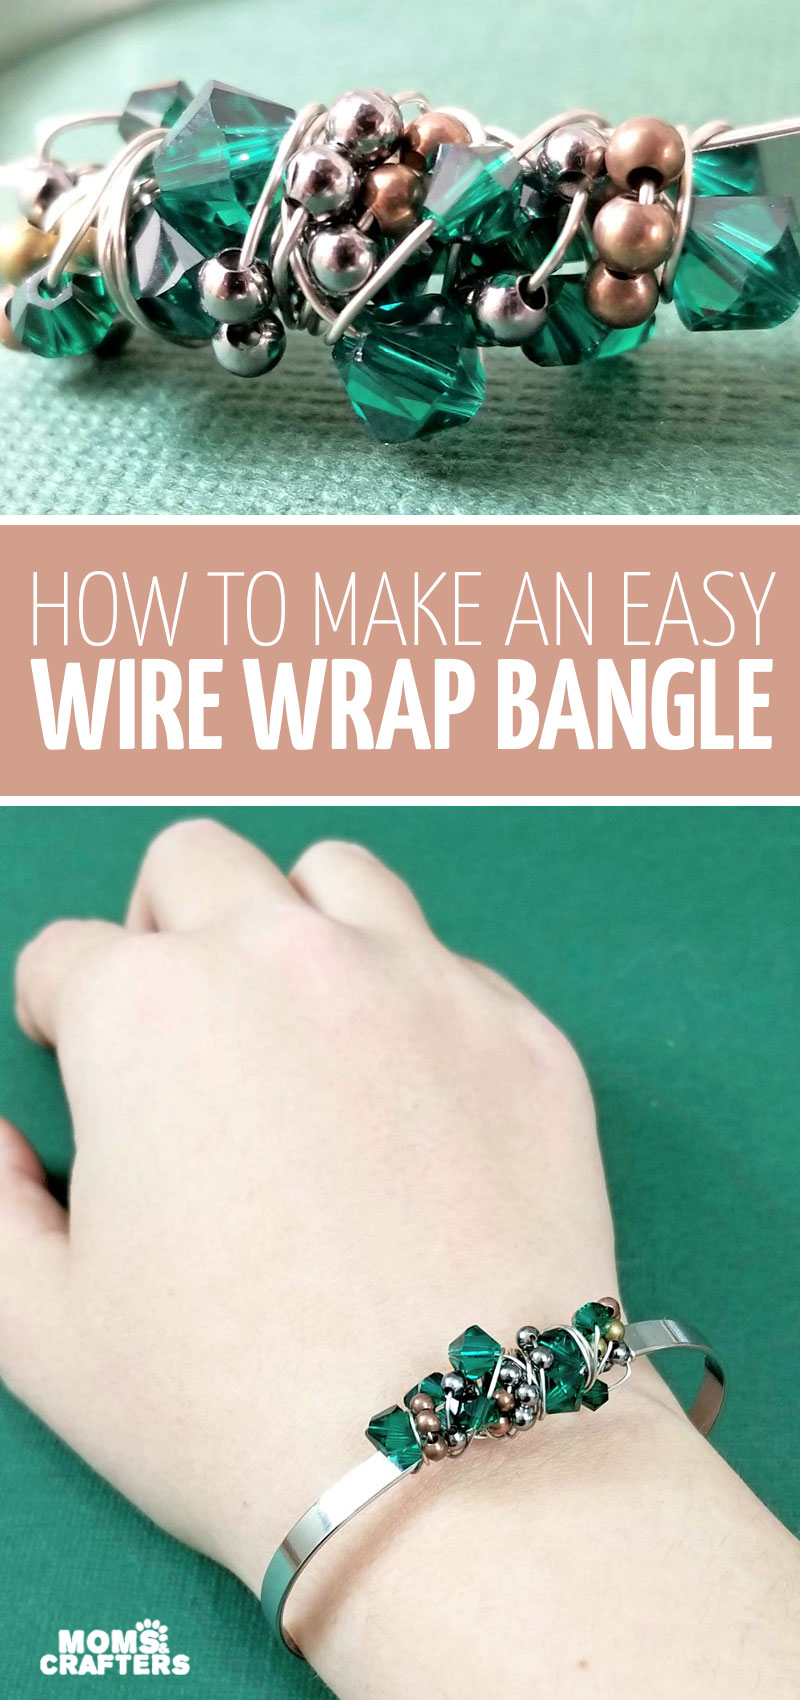 Make a stunning freeform wire wrapped bangle bracelet tutorial for beginners! You'll learn how to wire wrap bracelets and other jewelry. This jewelry making project for beginners looks really elegant and is great for Christmas or any day